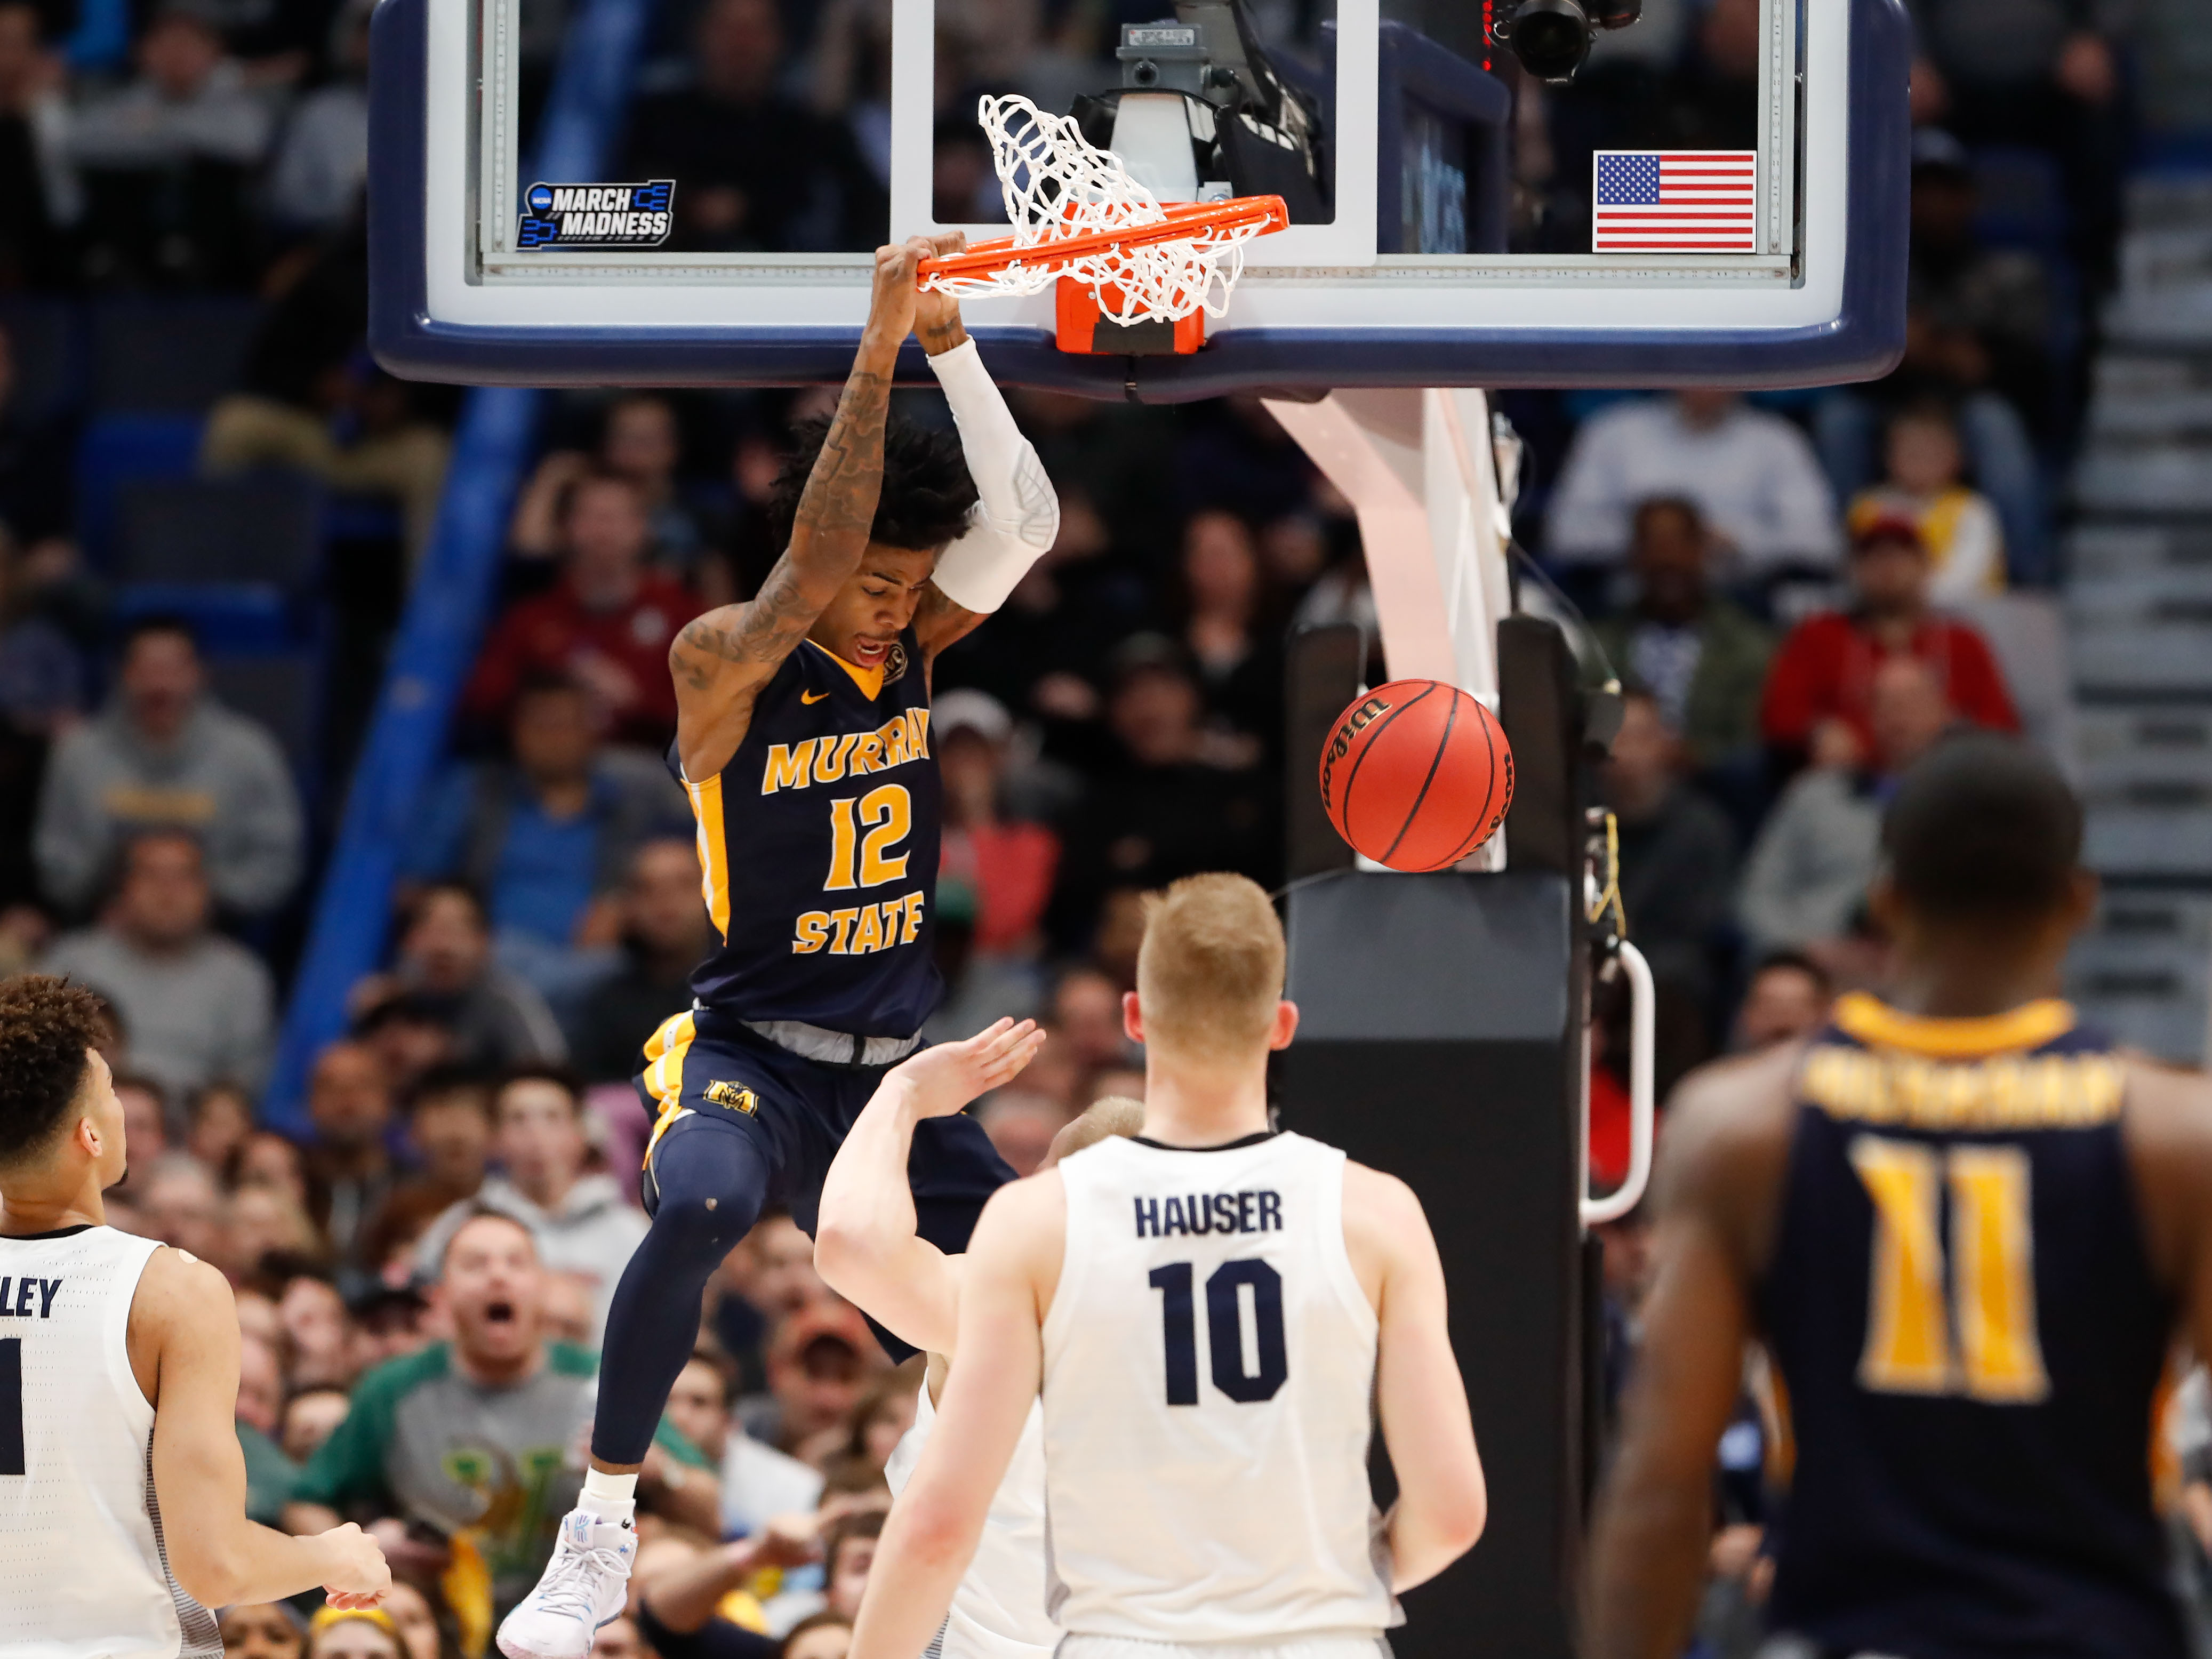 Ja Morant is here to distract you from that awful NBA team you root for